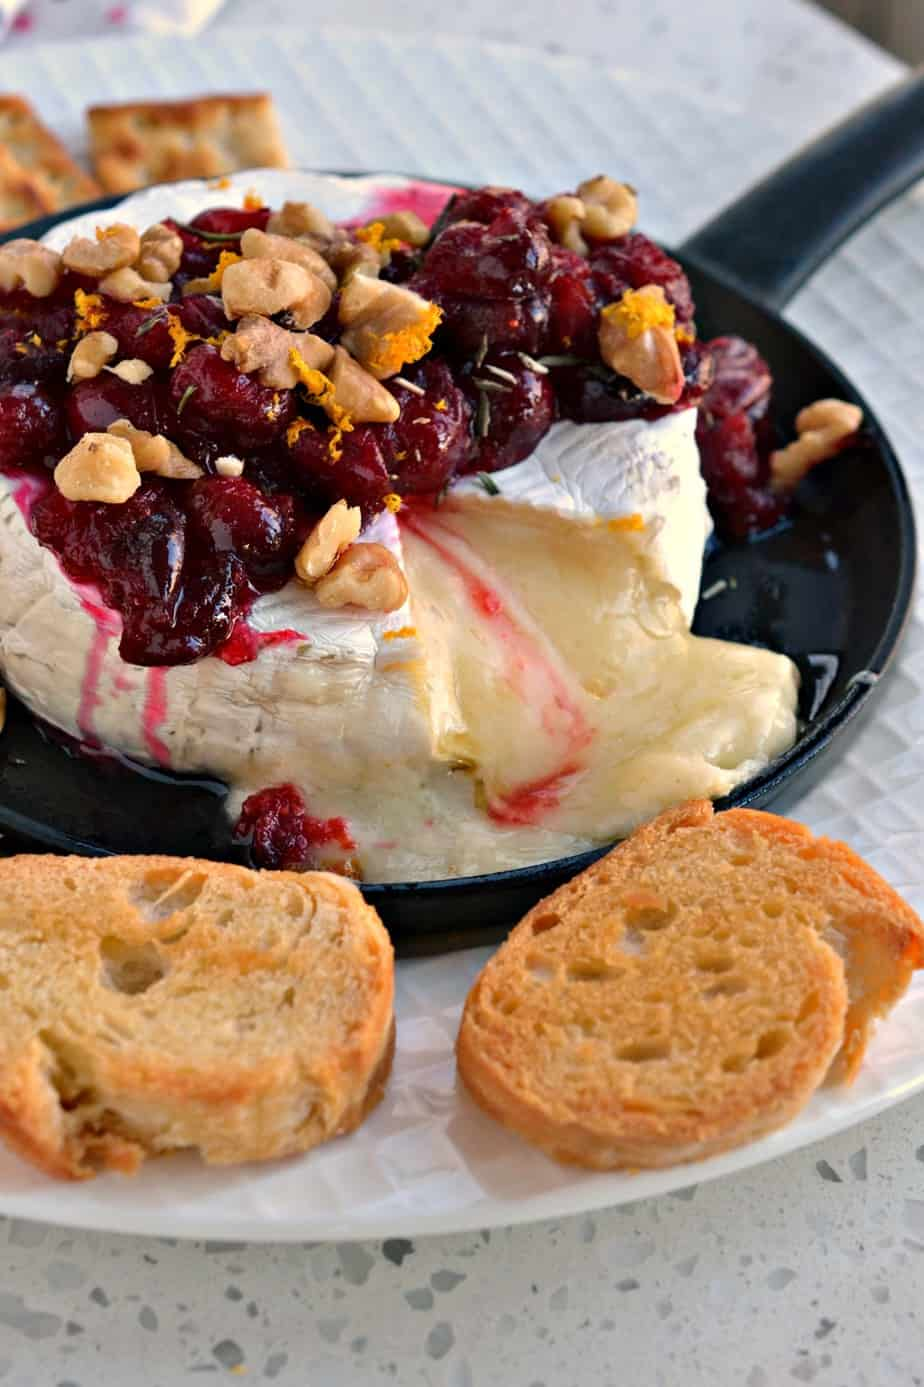 You will be so incredibly pleased with how easy this Baked Brie with Cranberries and Walnuts is and how delicious it tastes.